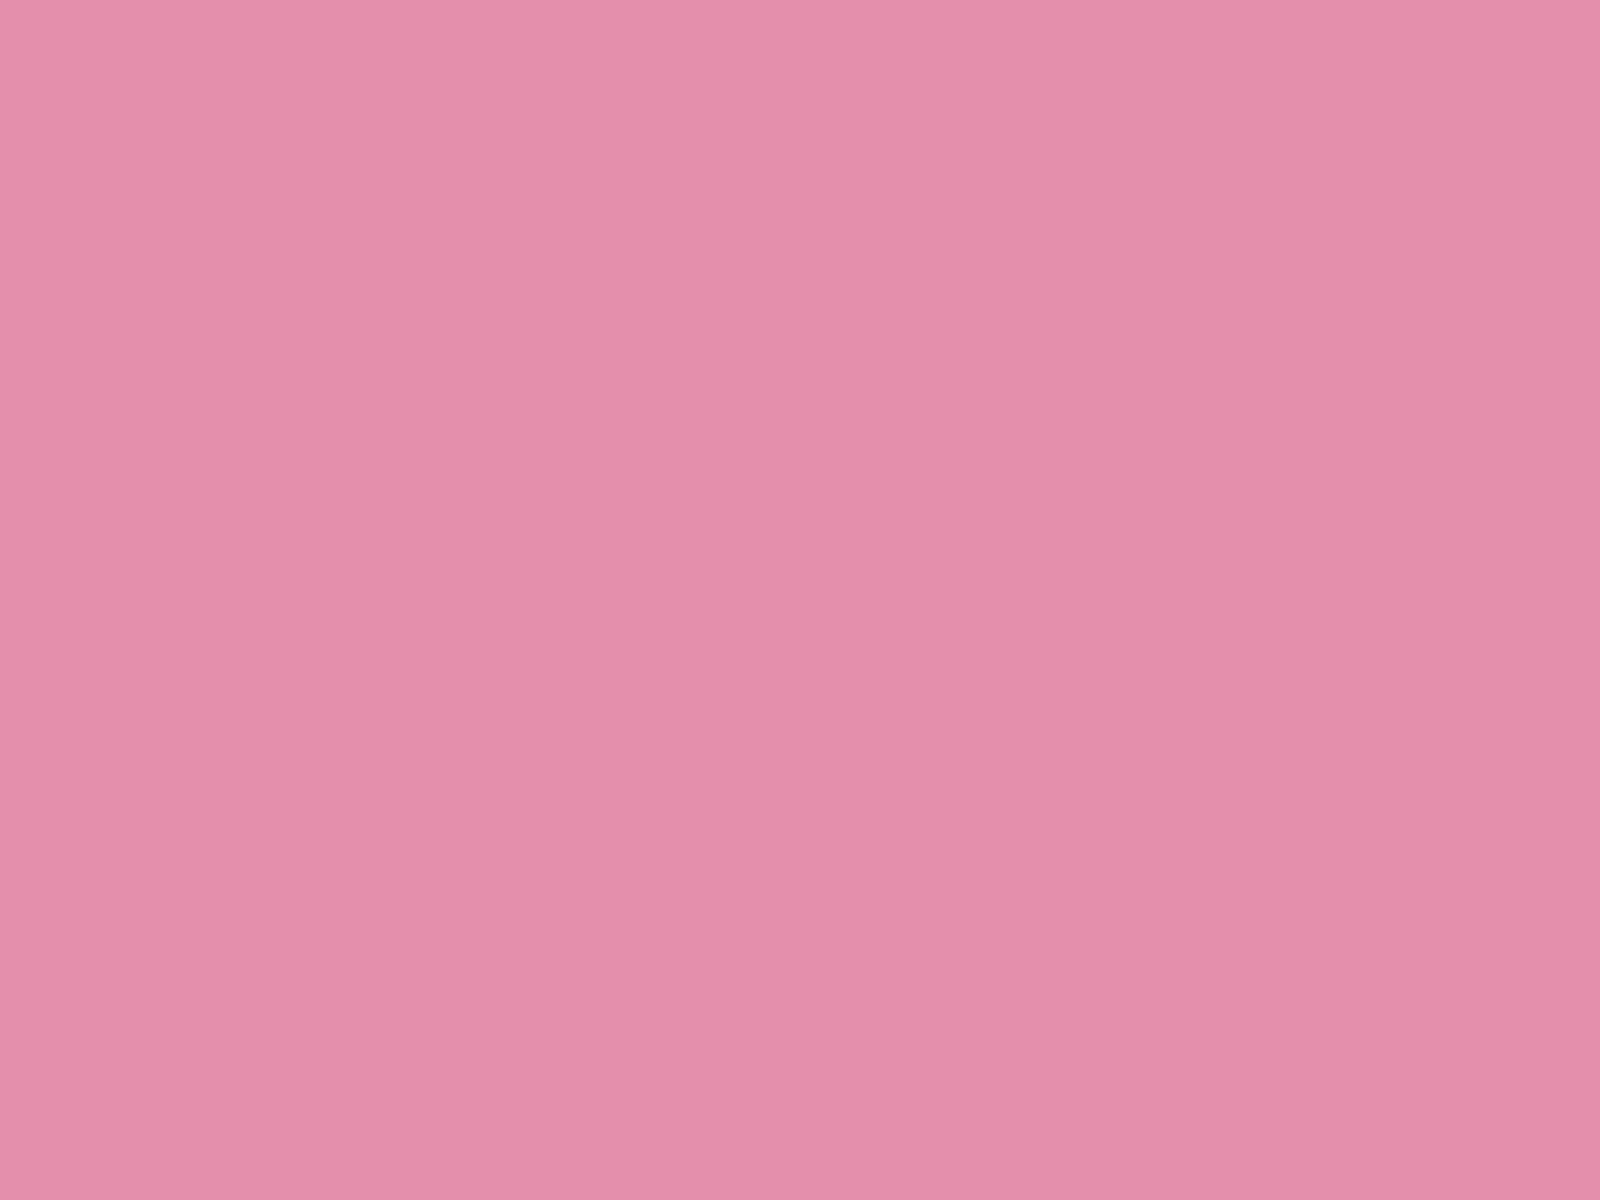 1600x1200 Charm Pink Solid Color Background